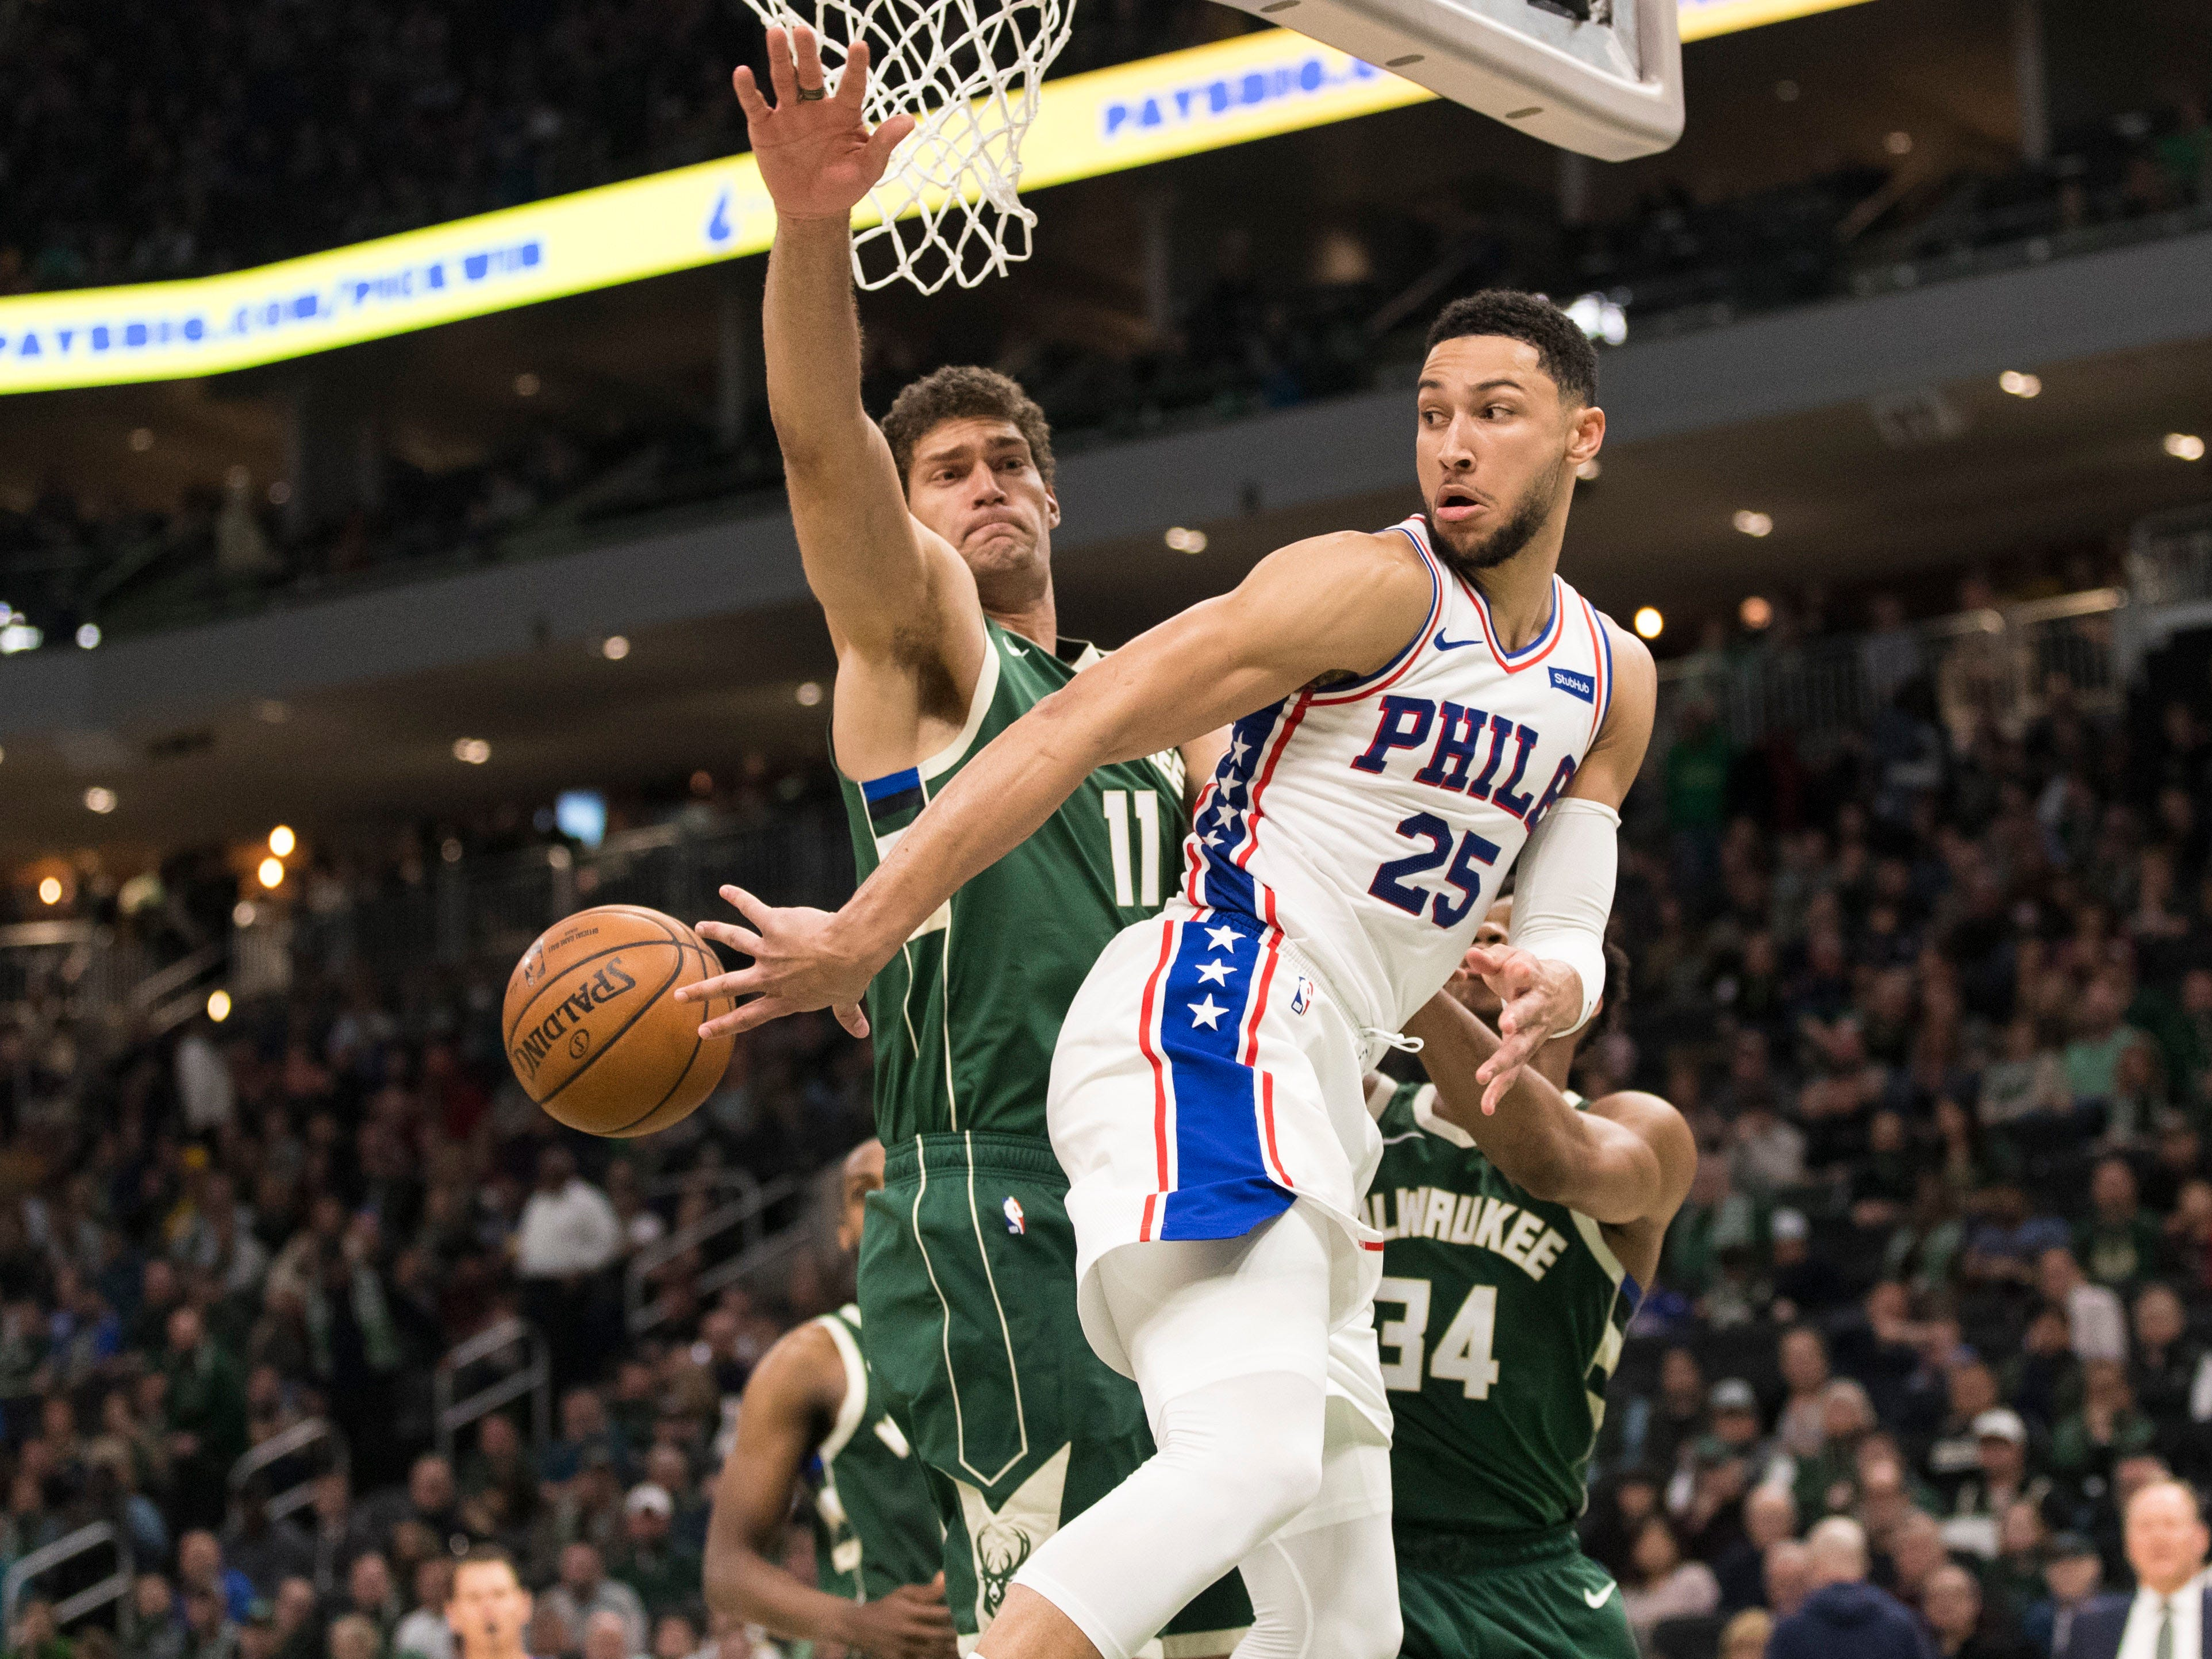 76ers guard Ben Simmons throws a backward pass after being confronted by Bucks center Brook Lopez underneath the basket during the third quarter.